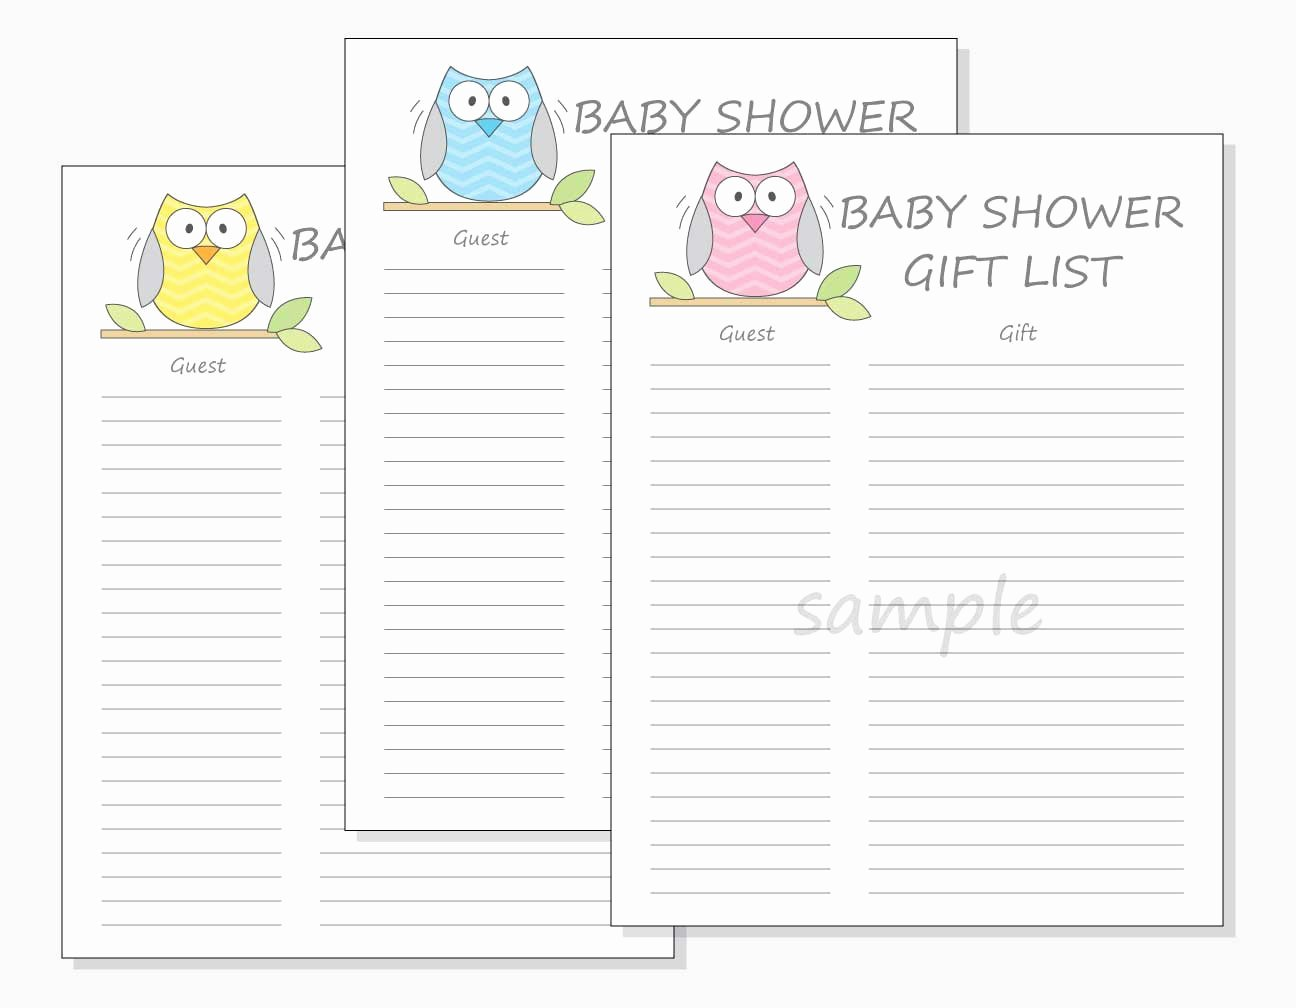 Baby Shower Gift Lists Awesome Diy Baby Shower Guest Gift List Printable Chevron Owl Design